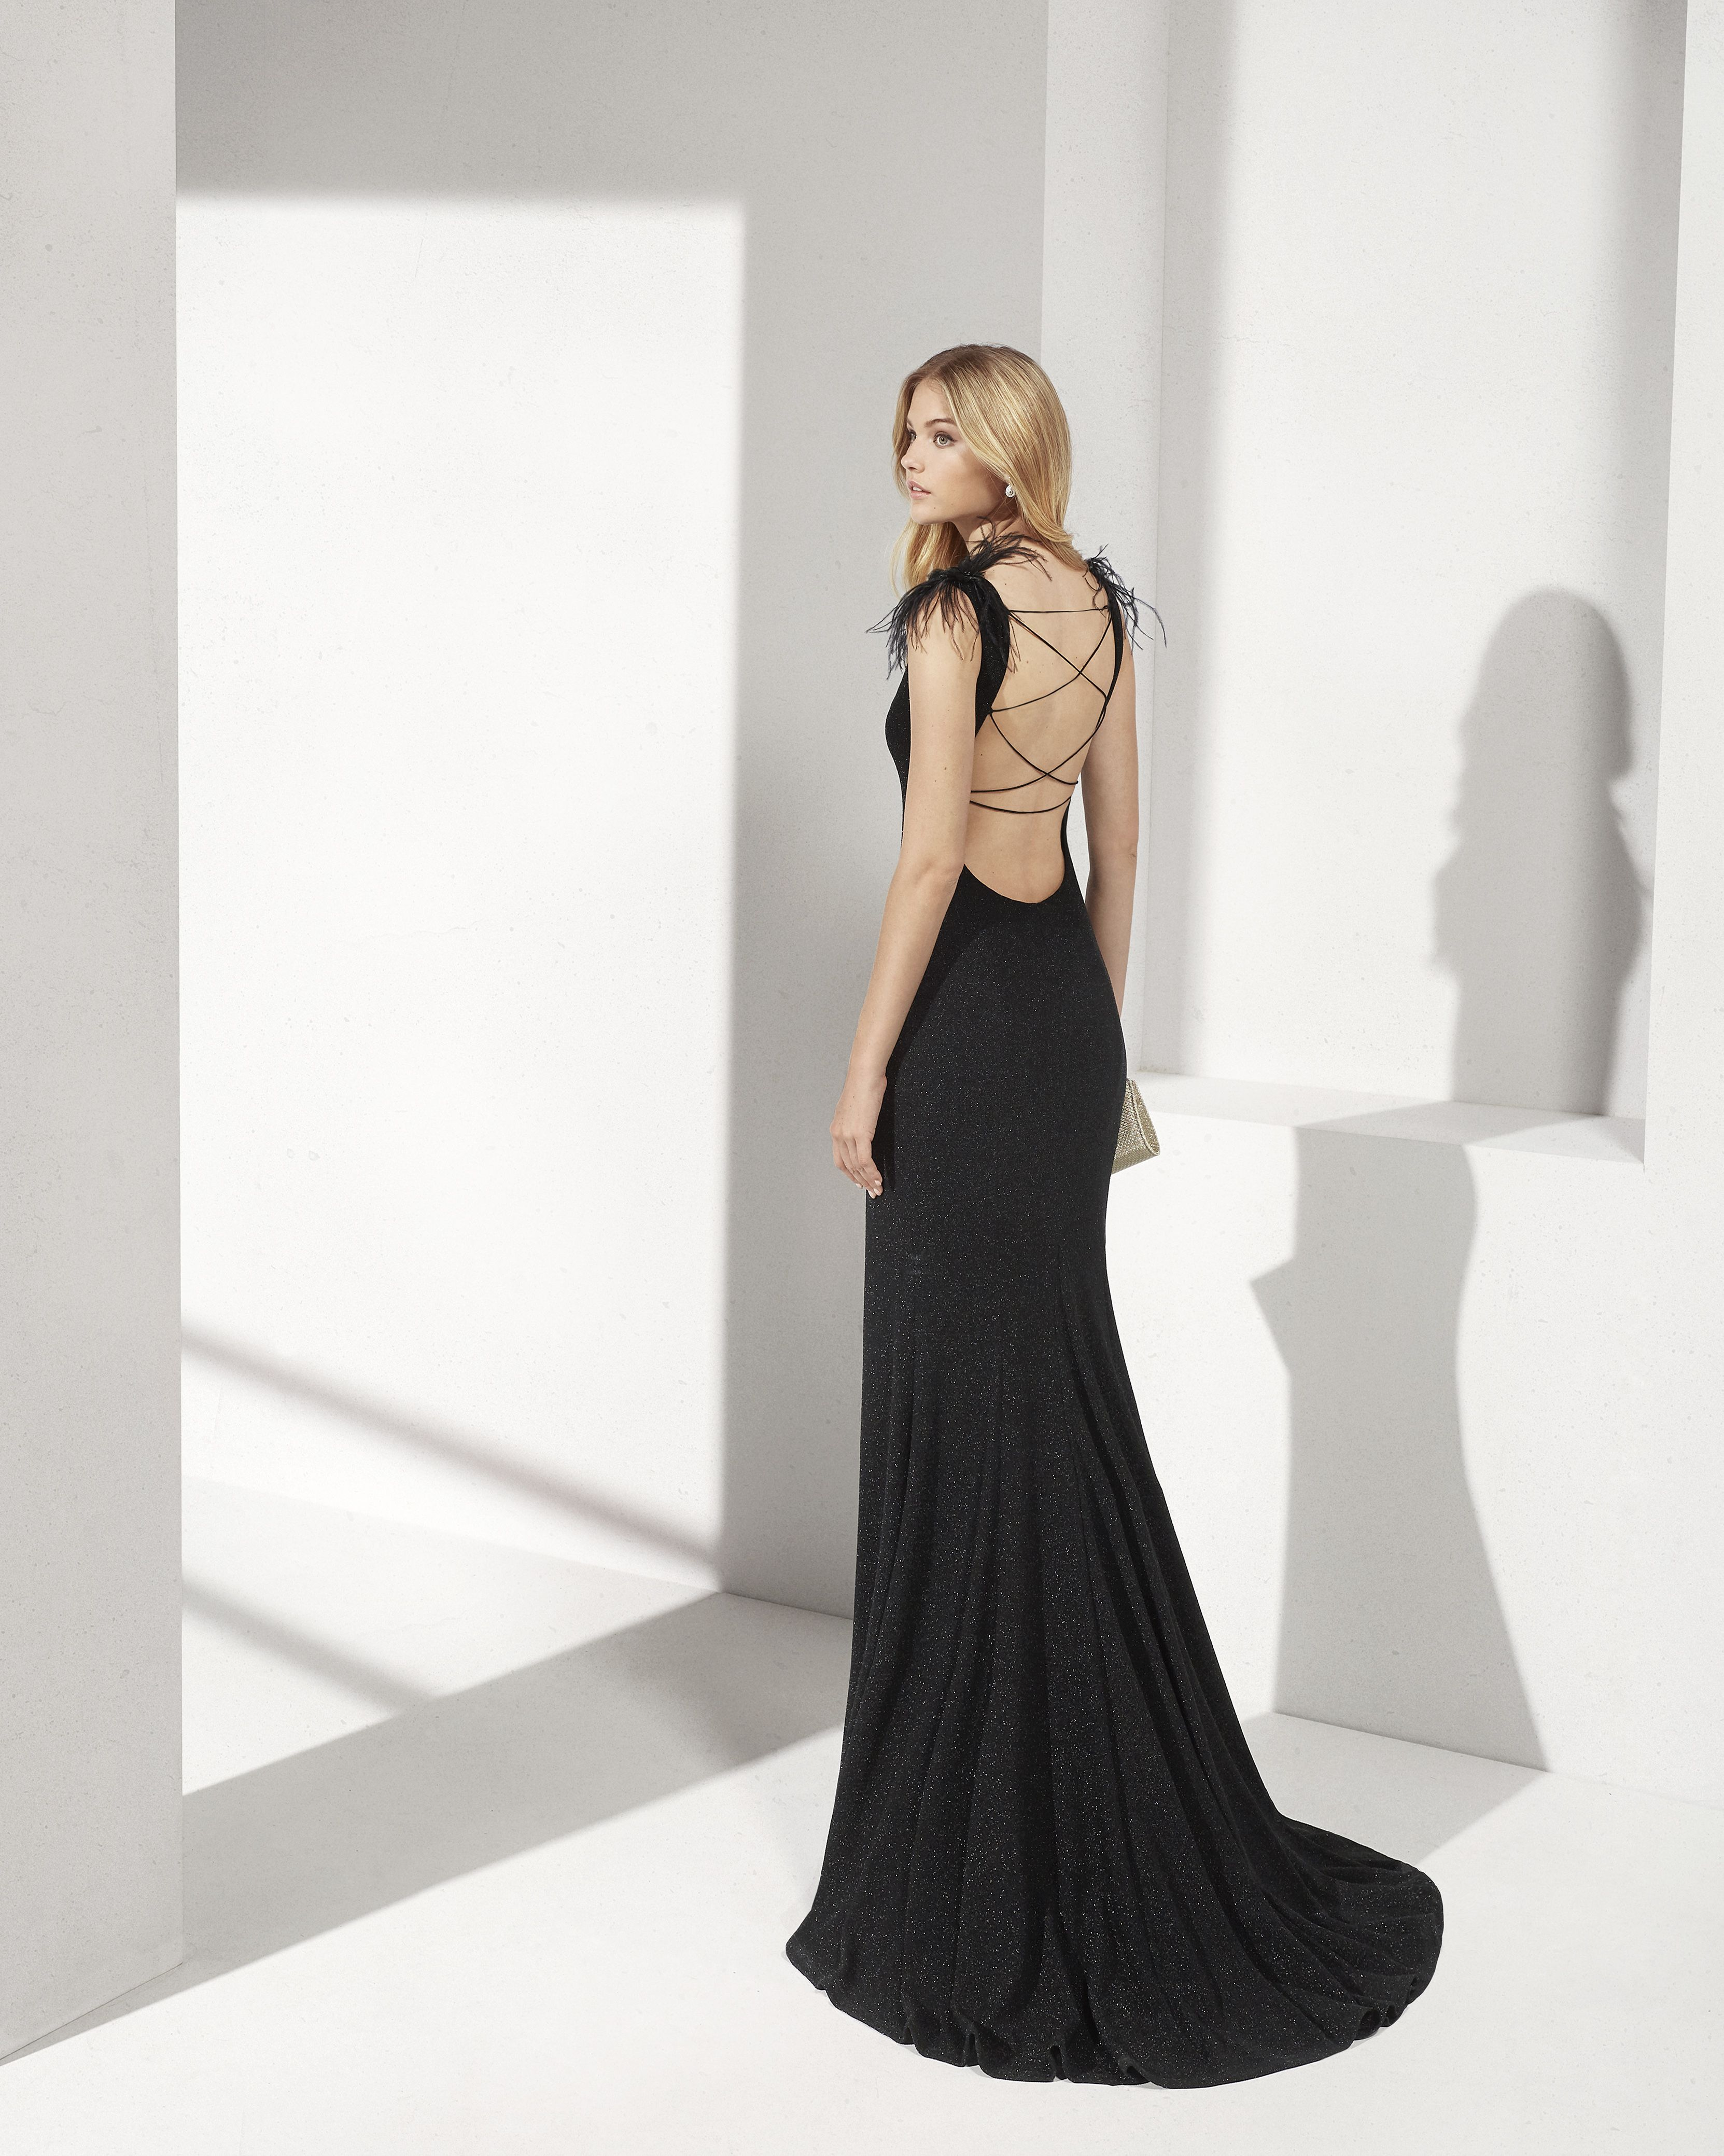 c2e1121b6 Long lurex cocktail dress. Bateau neckline with feathers at the shoulders  and open back.